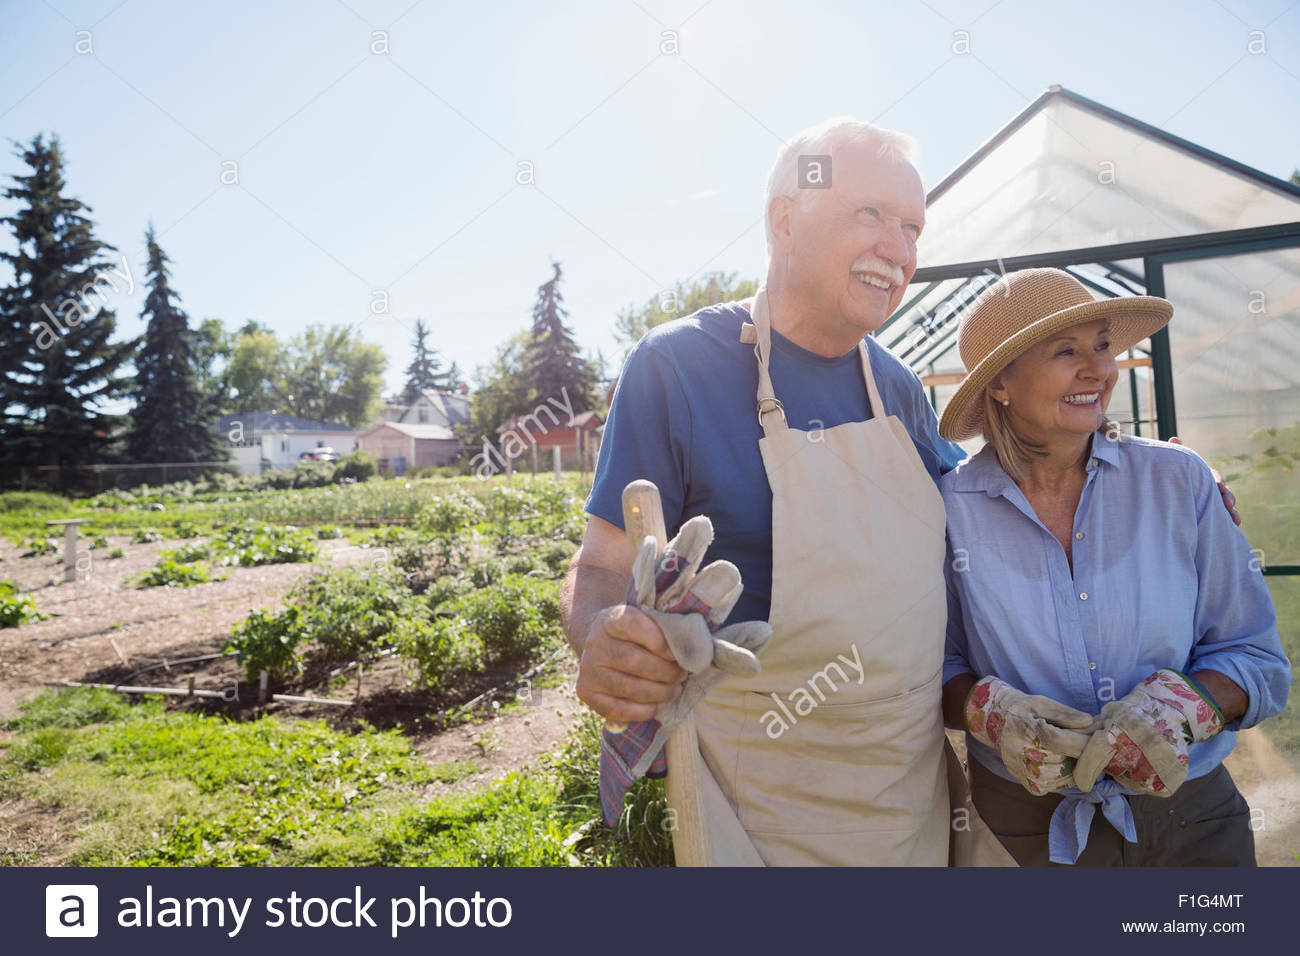 Smiling senior couple with gardening gloves sunny garden - Stock Image